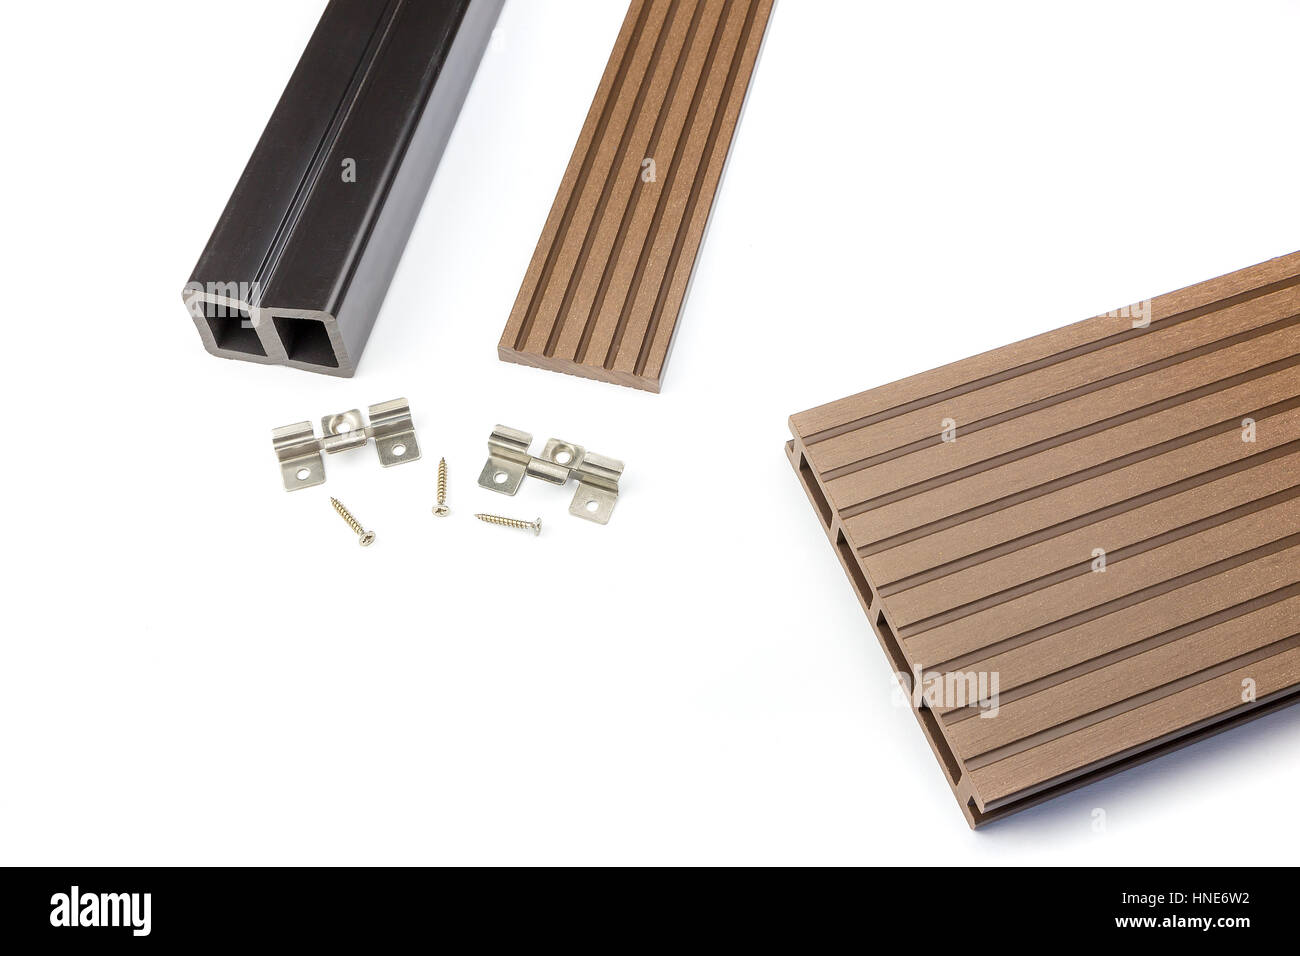 Brown composite decking plank with fastening material - Stock Image